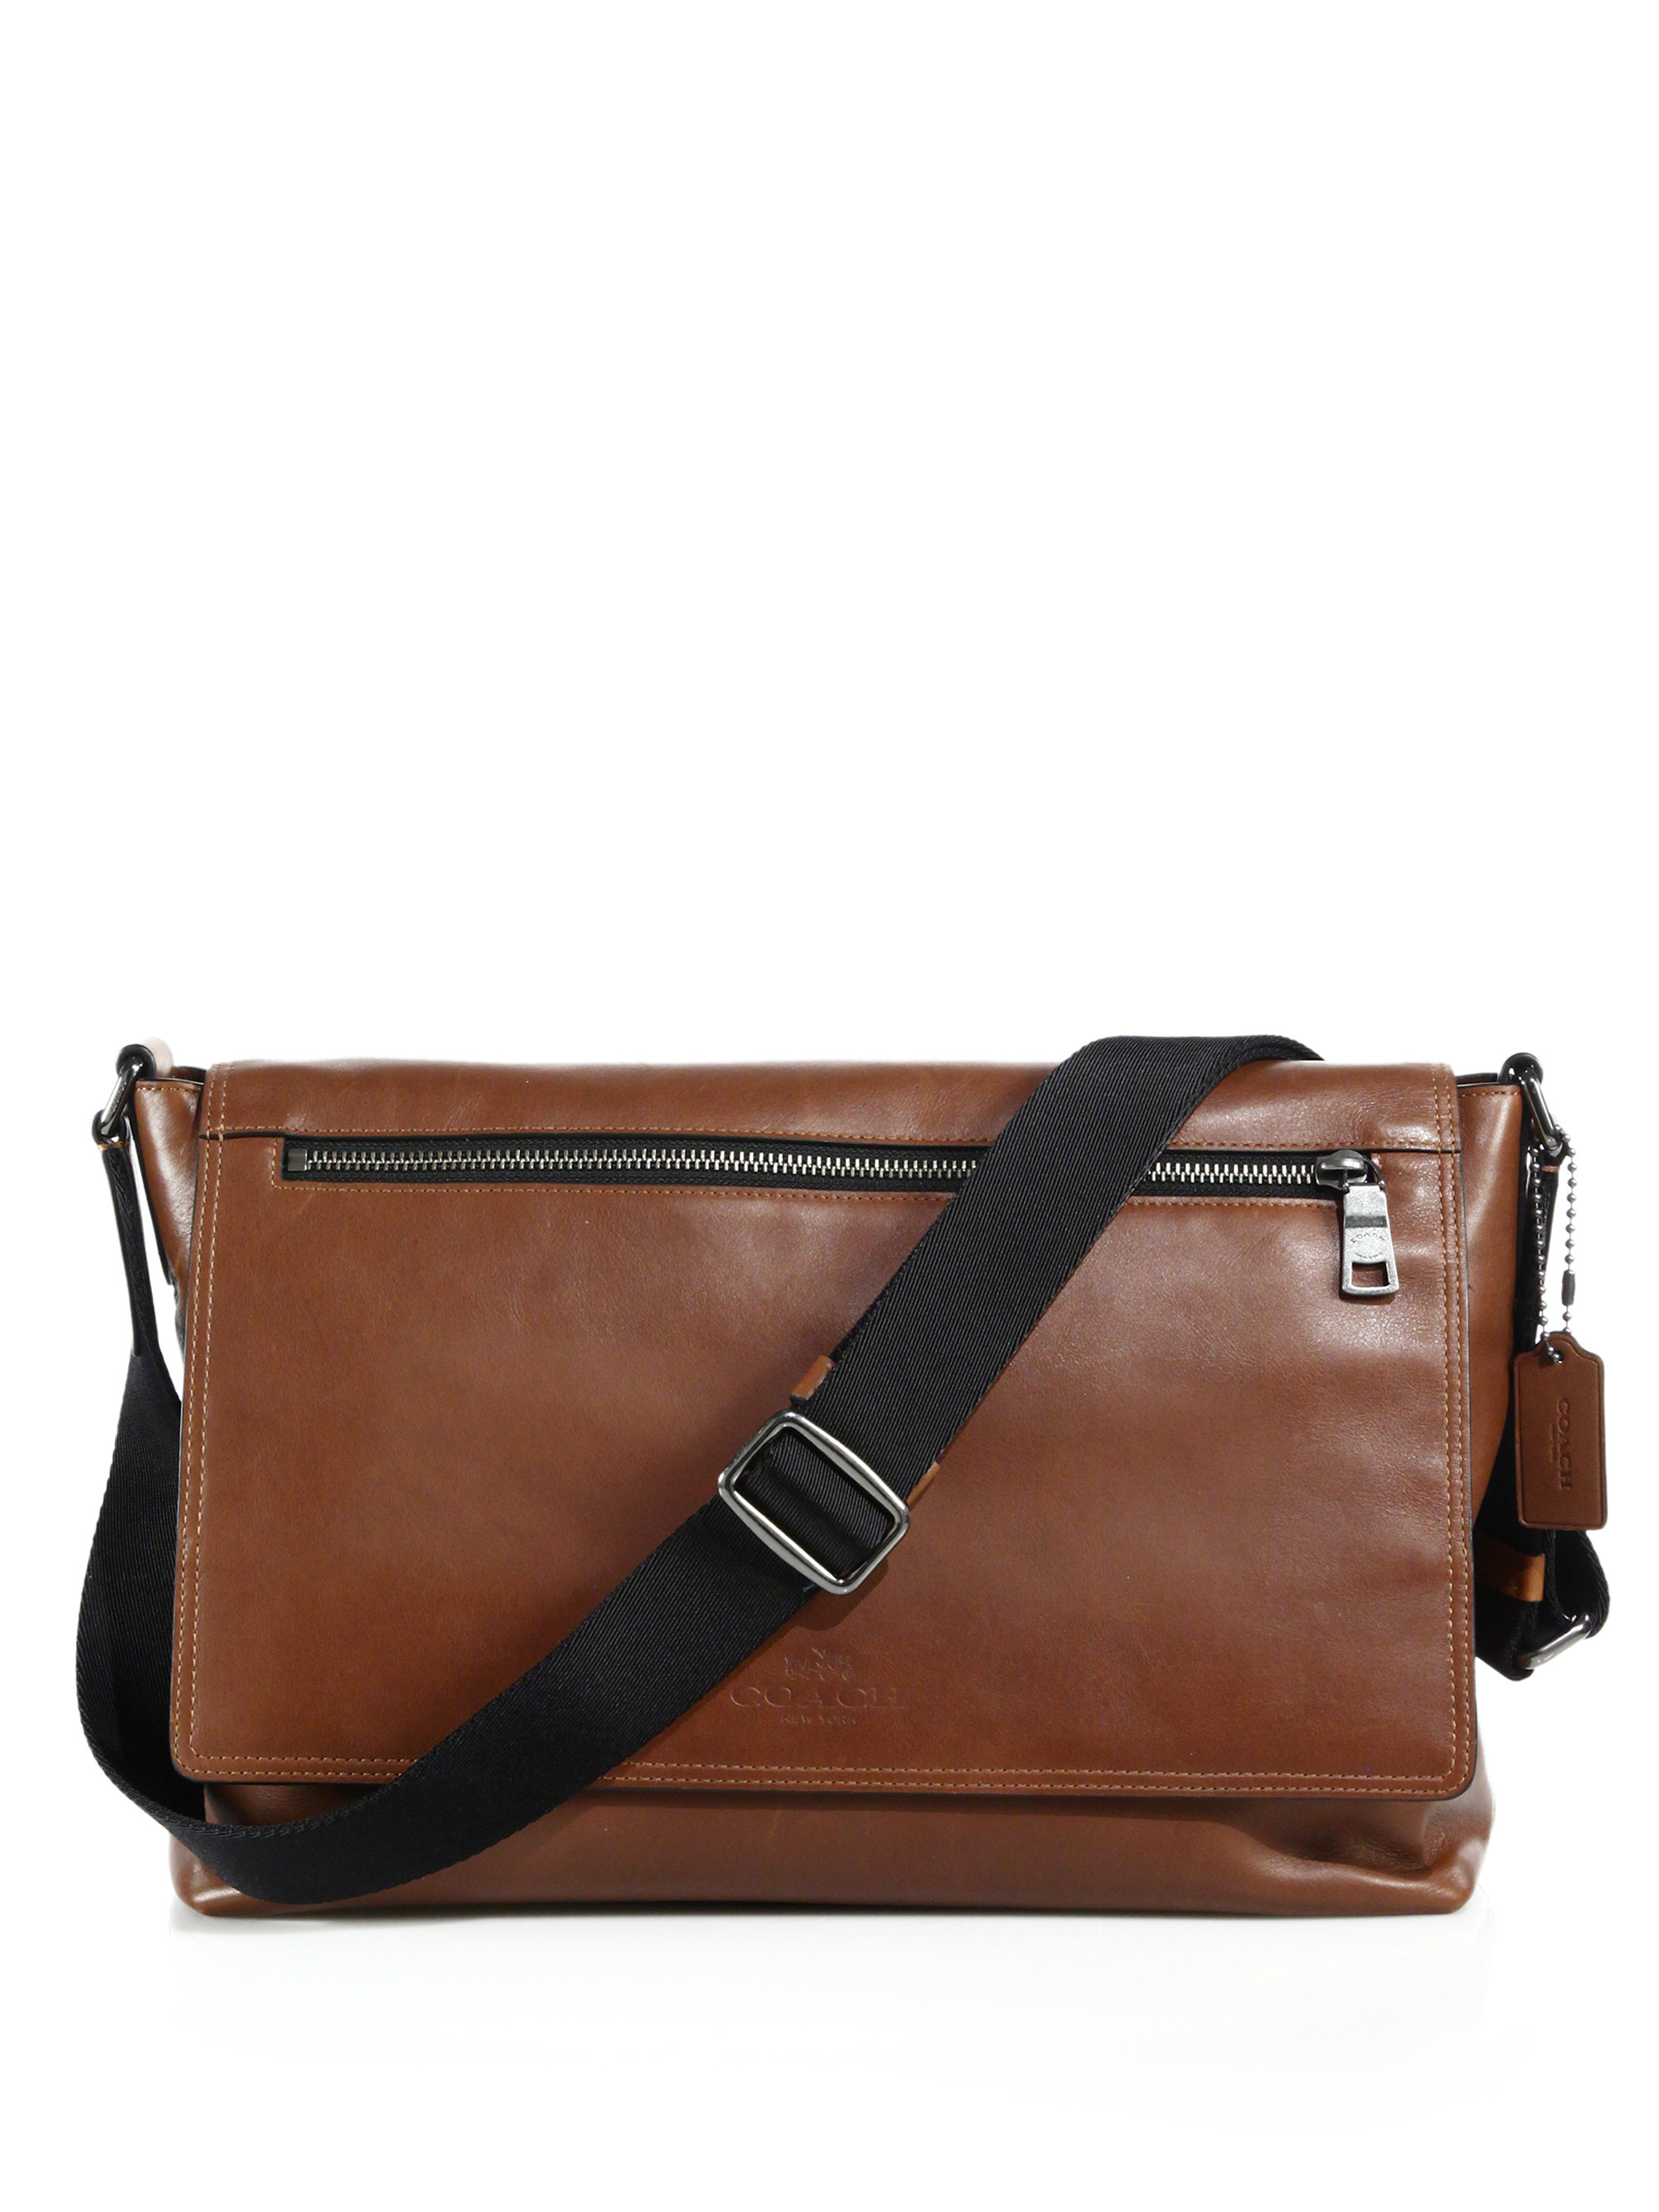 Coach Sullivan Leather Messenger Bag In Brown For Men Lyst